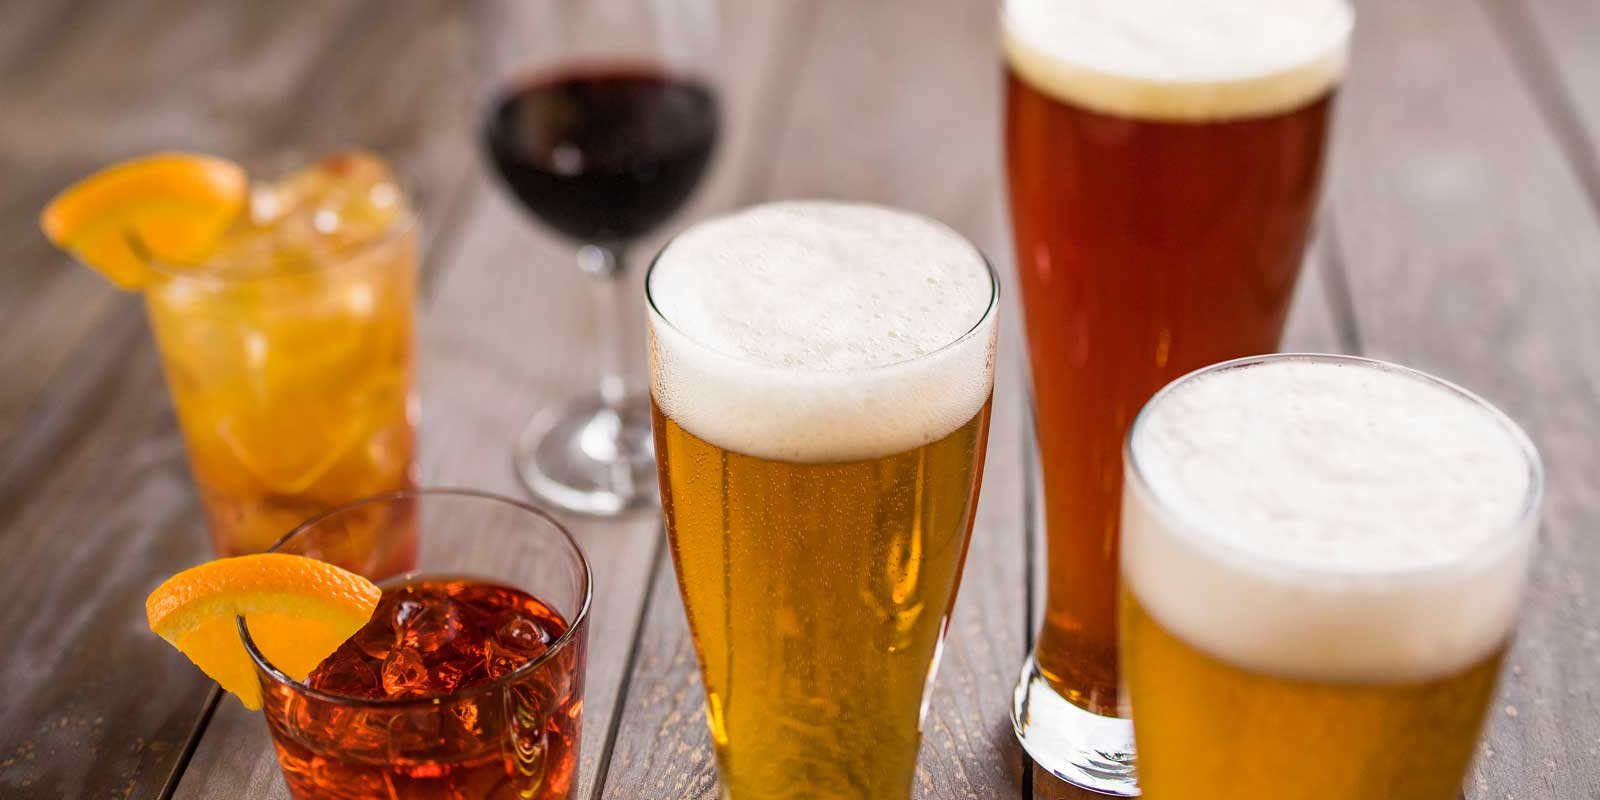 Sample beer, wine or cocktails from around the world at Disney World.